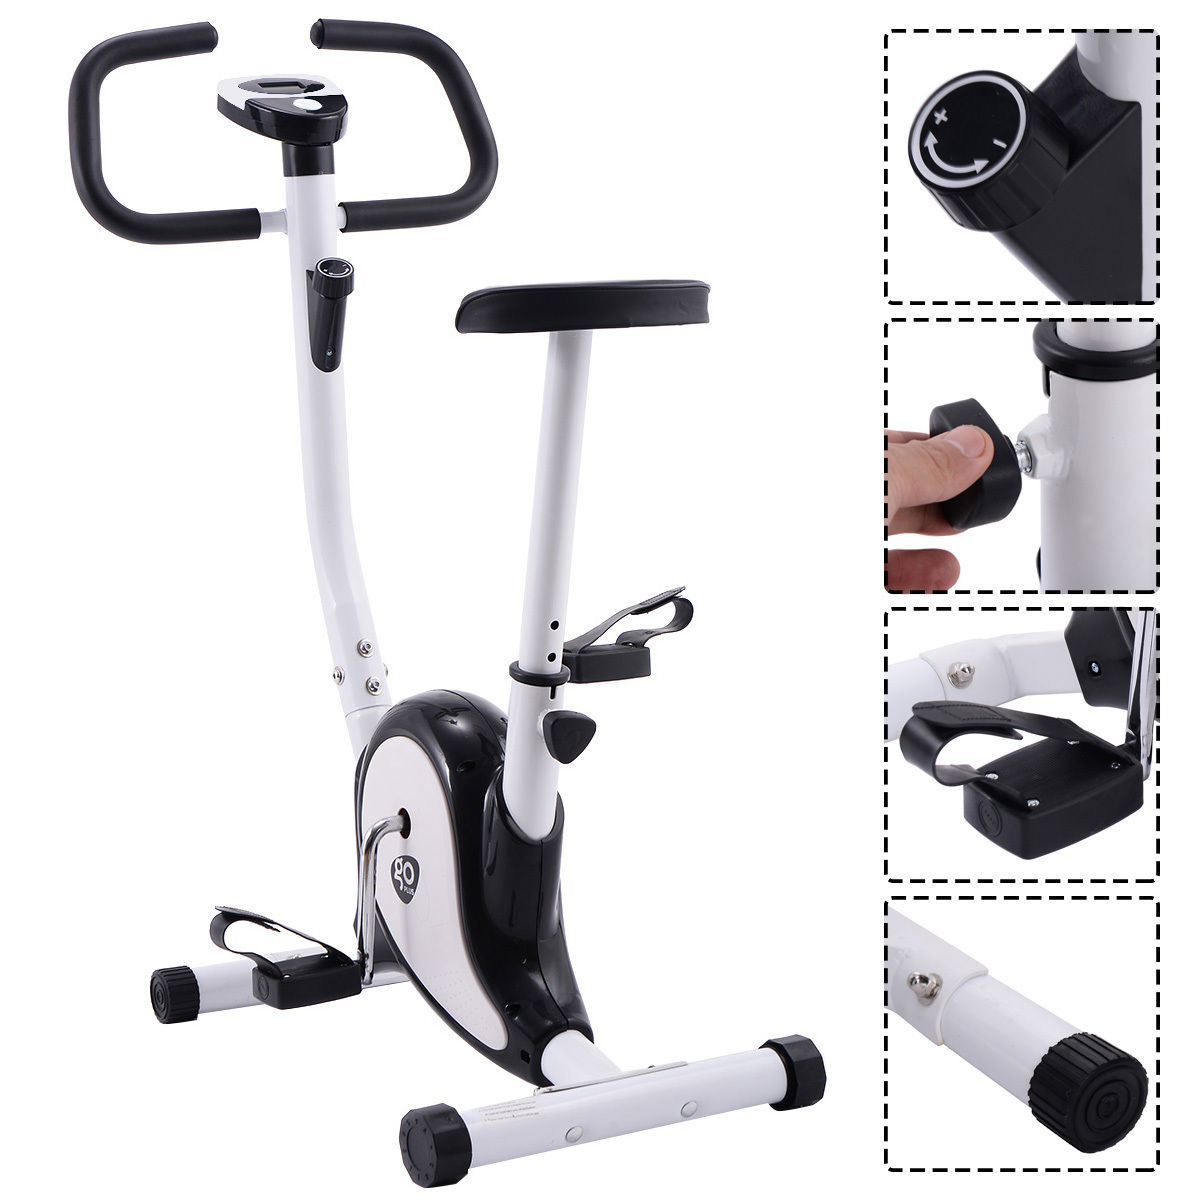 Goplus Exercise Bike Stationary Cycling Fitness Cardio Aerobic Equipment Gym Black